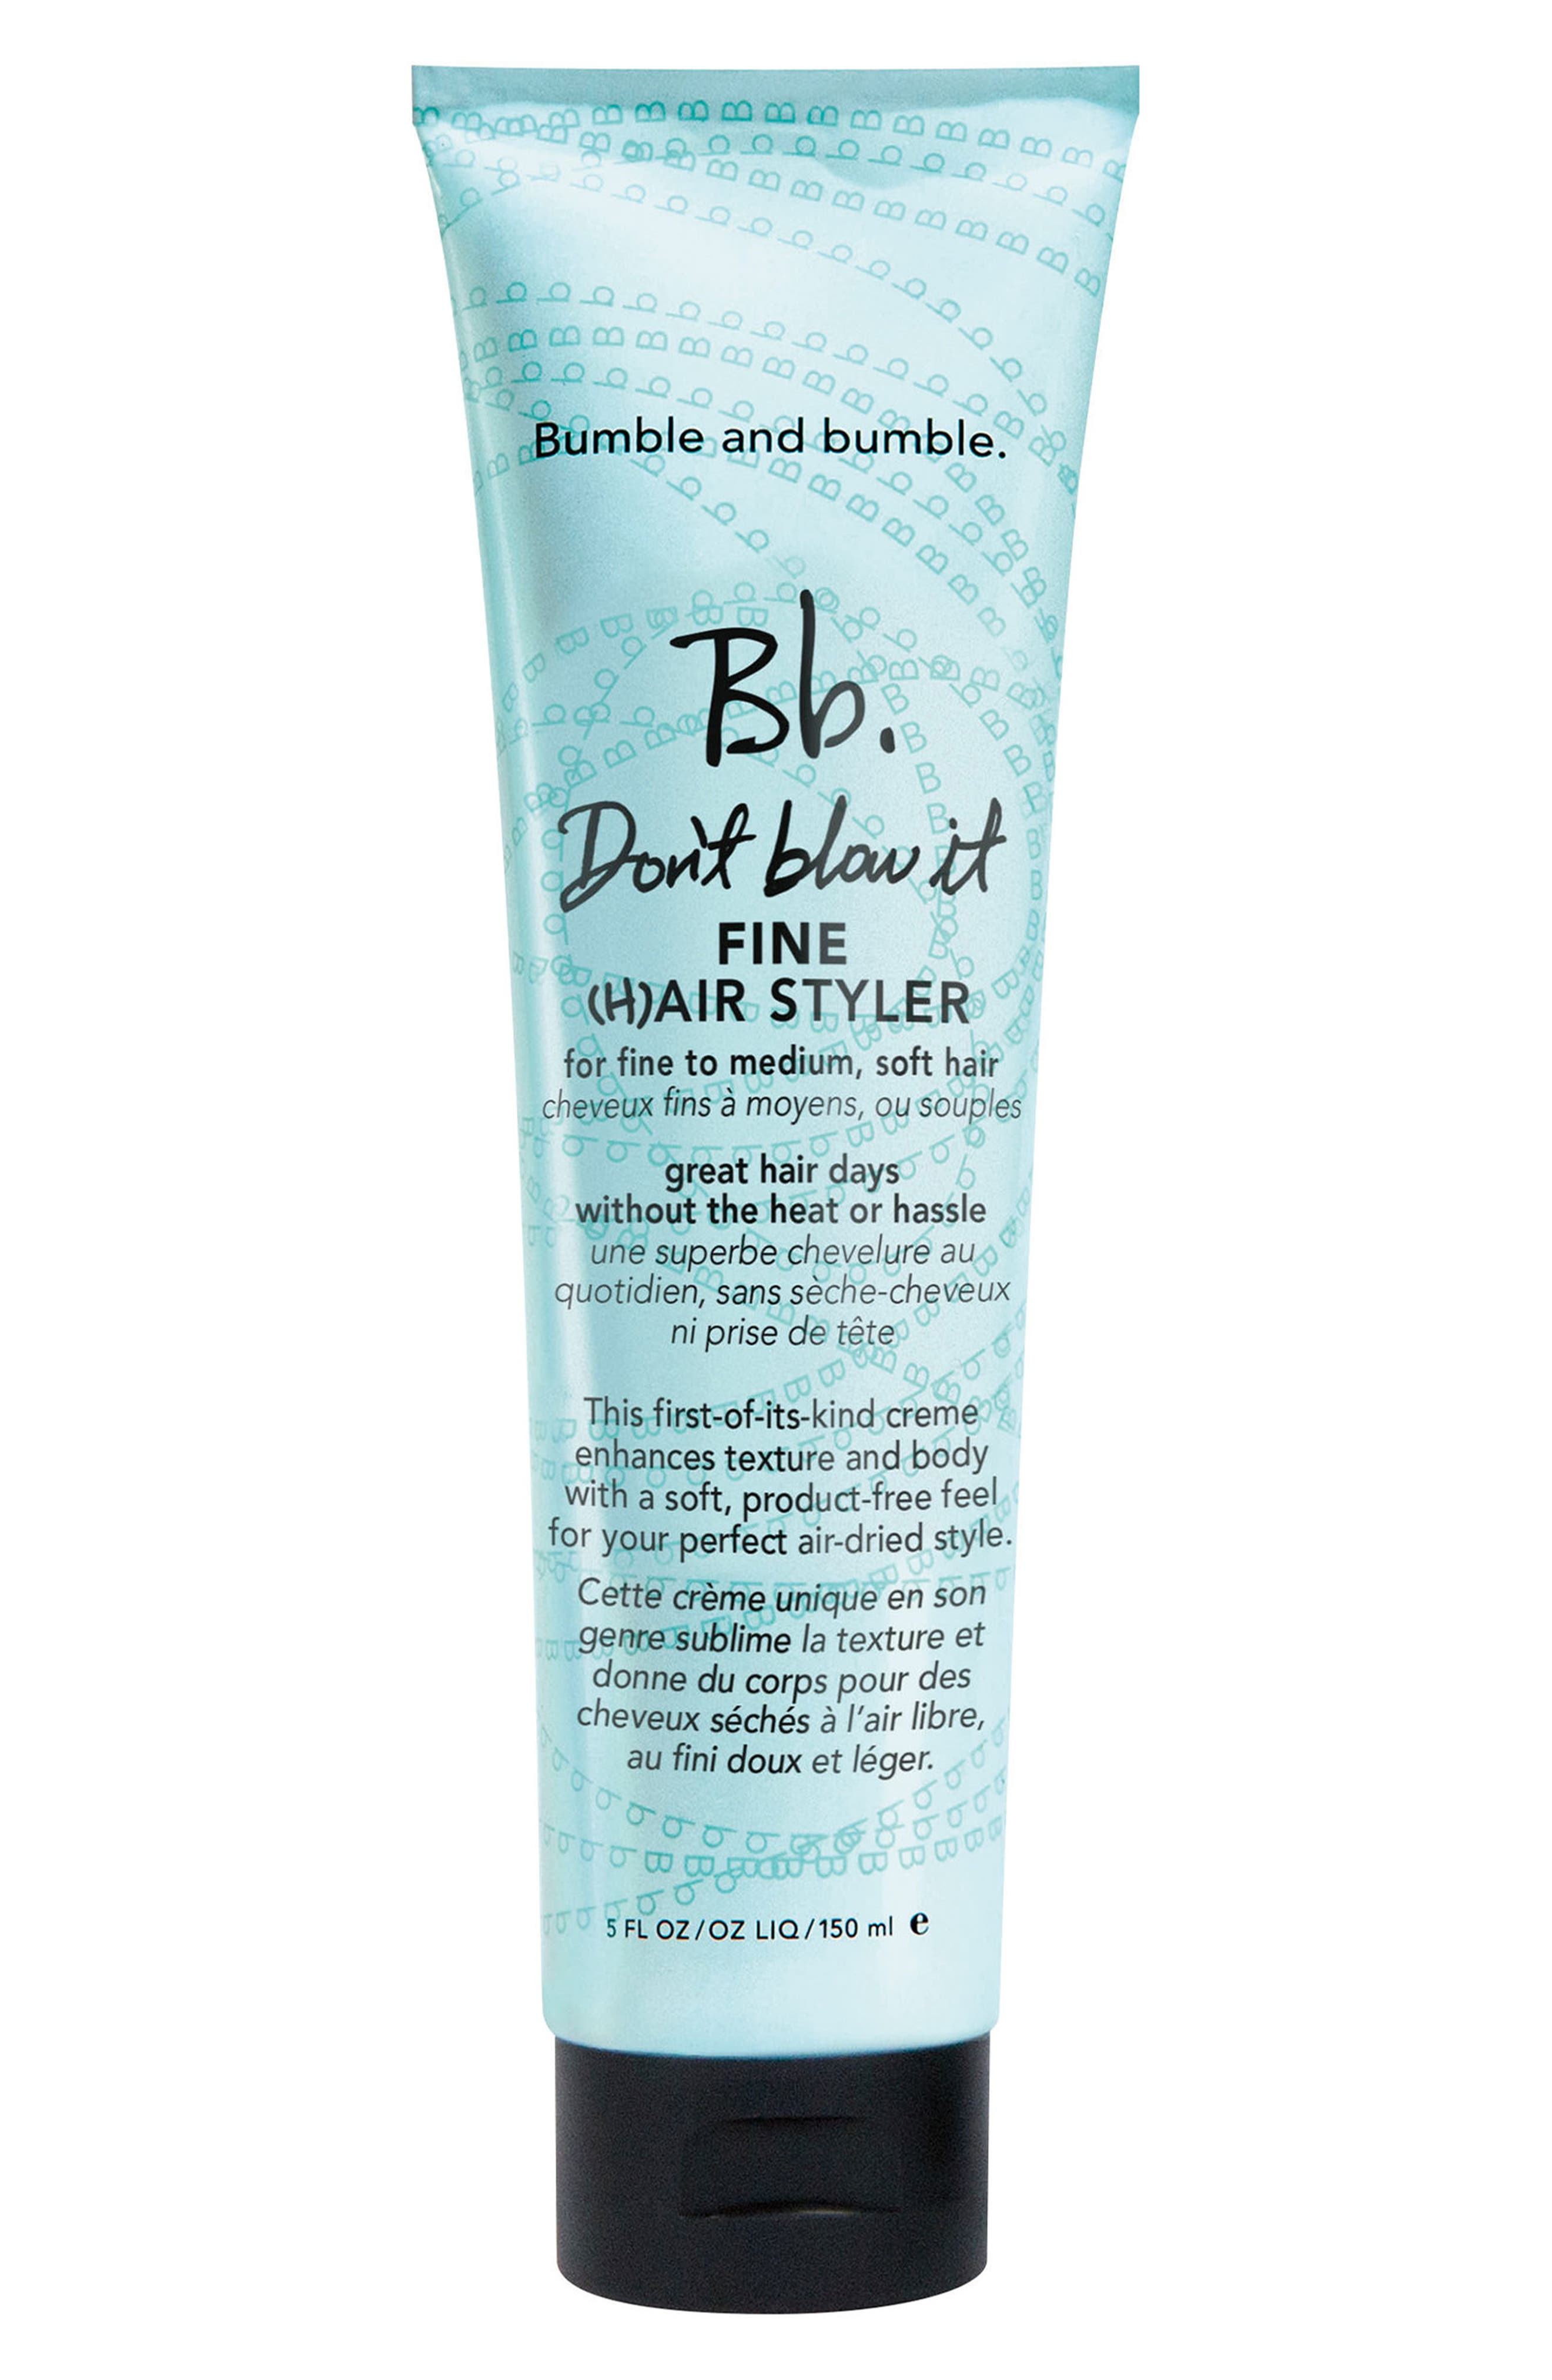 Bumble and bumble Don't Blow It Fine Hair Styler